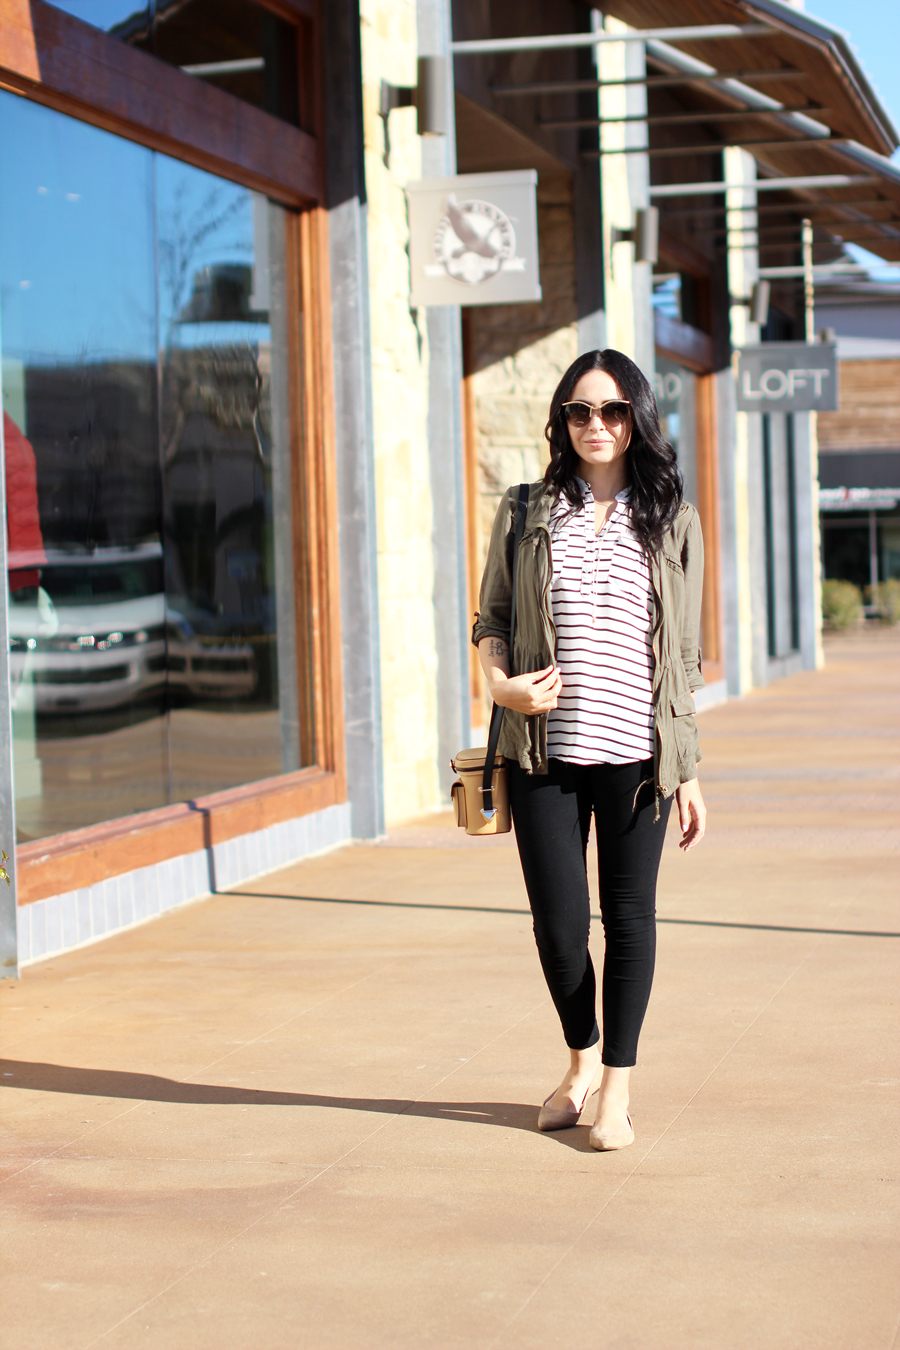 FTT-CARGO-JACKET-SHOPPING-HILL-COUNTRY-GALLERIA-SKINNY-JEANS-STRIPES